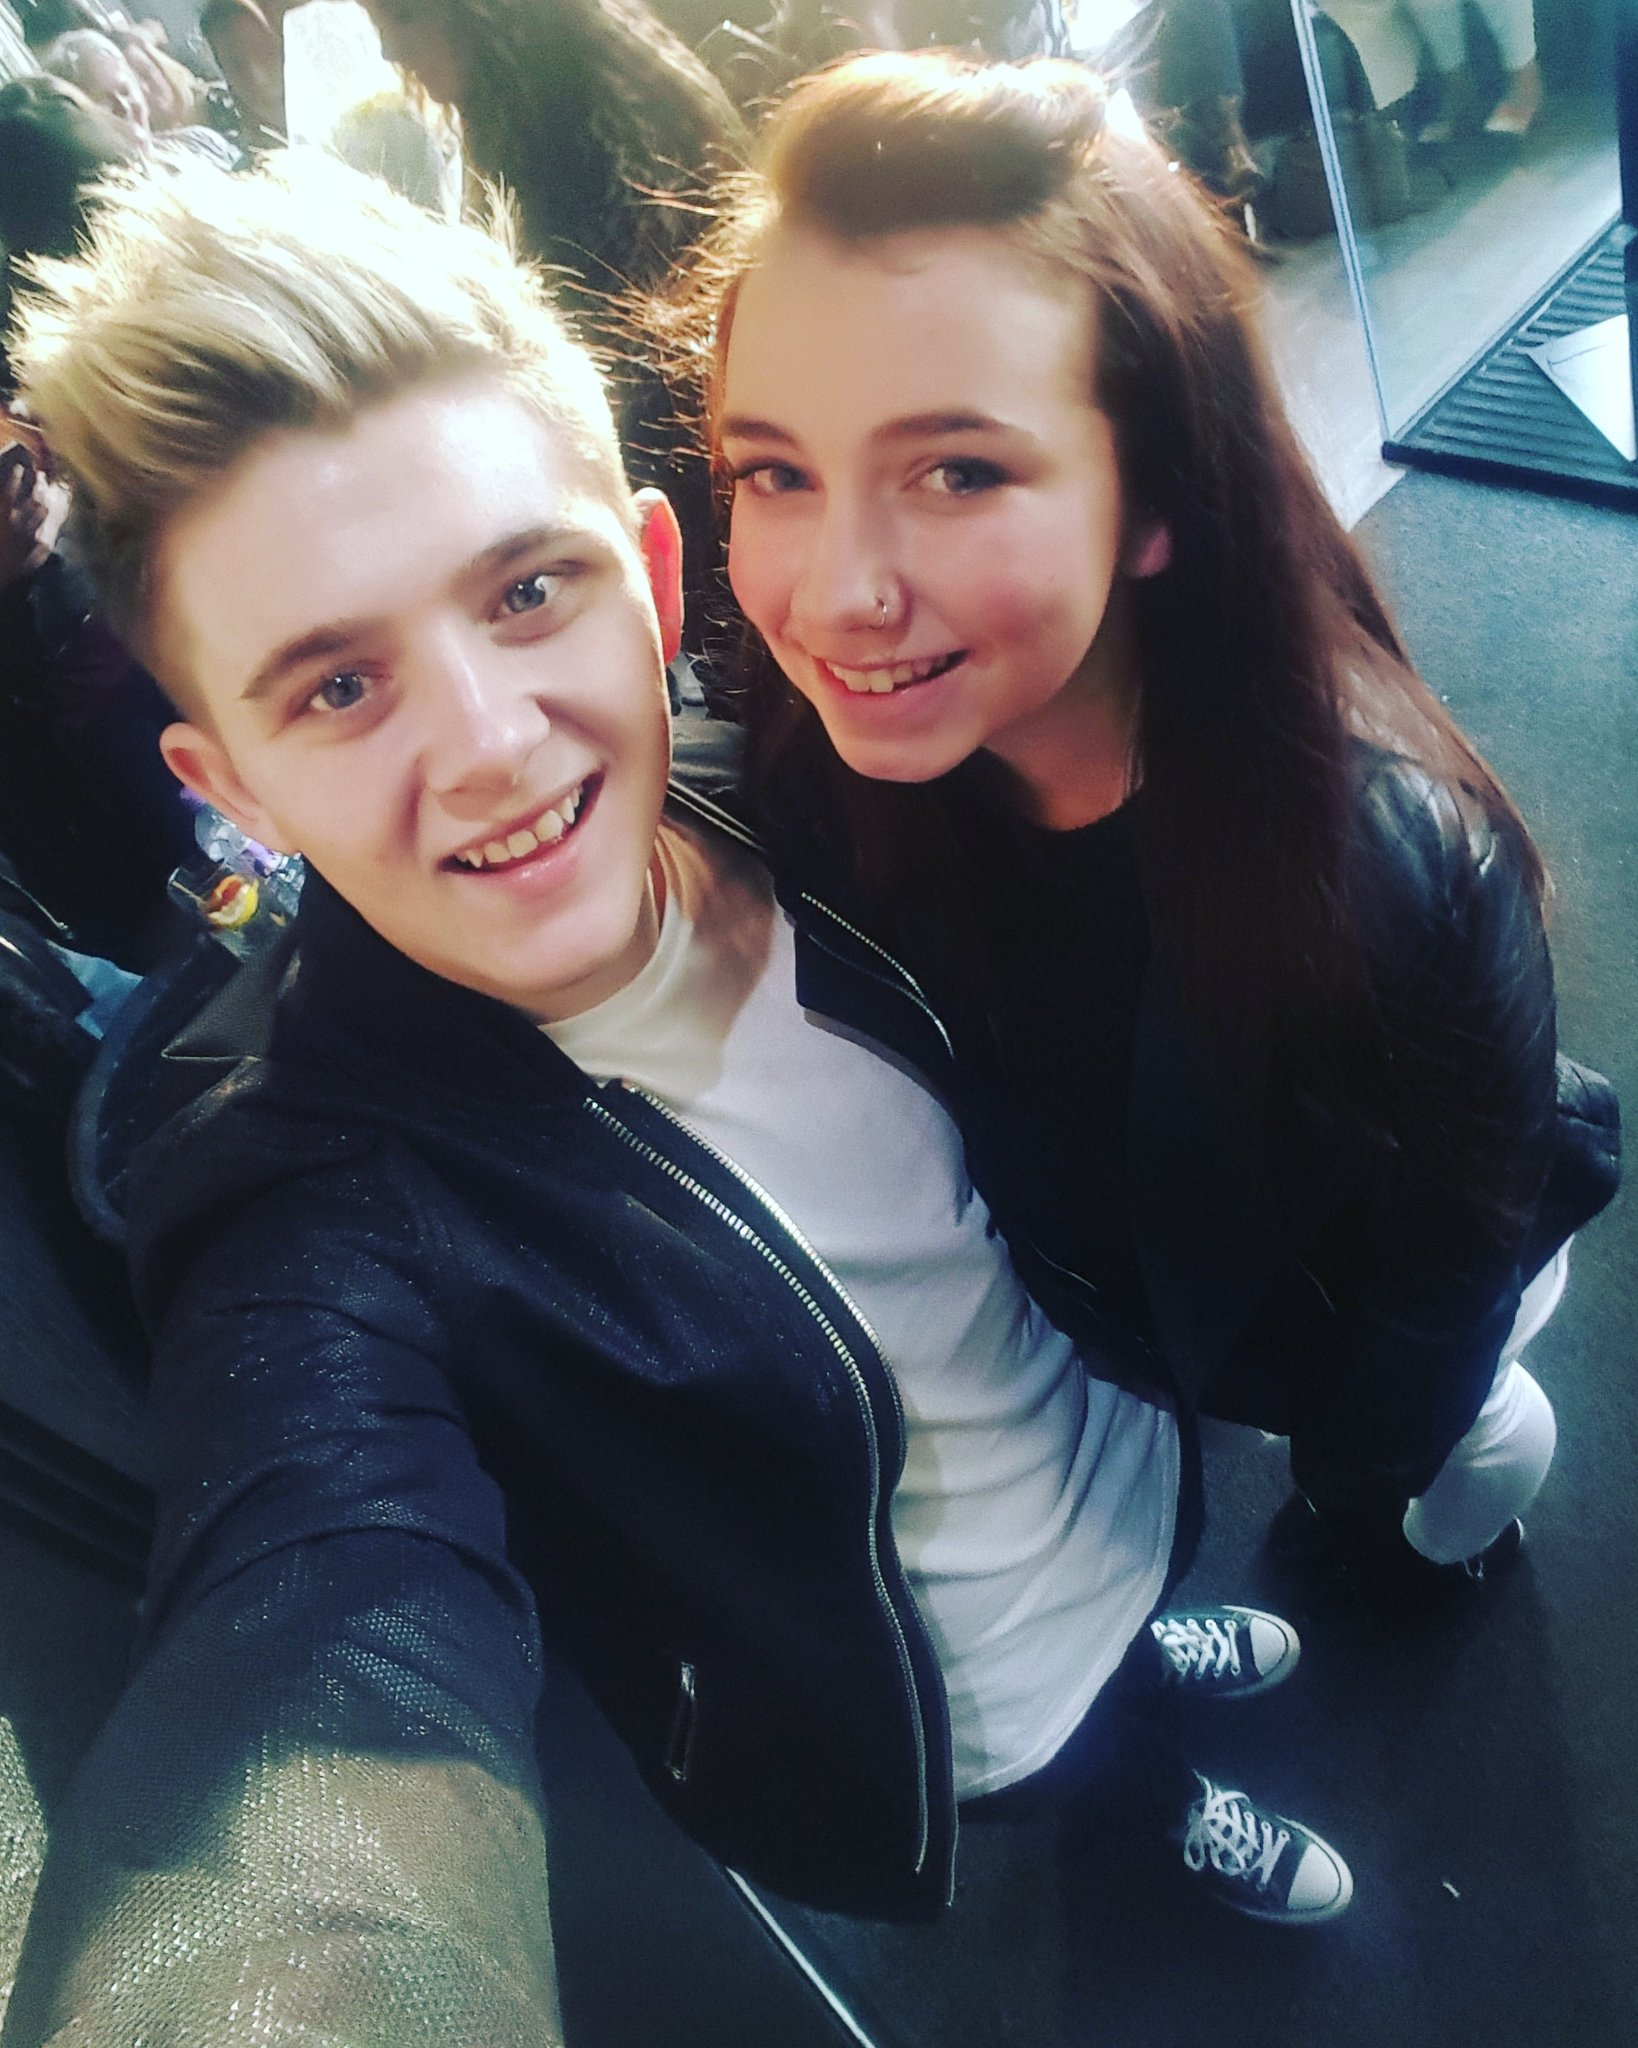 RT @jennybob_xxx: @nickymcdonald1 was good seeing you today ❤❤ see you soon https://t.co/7oRrwY2rUo